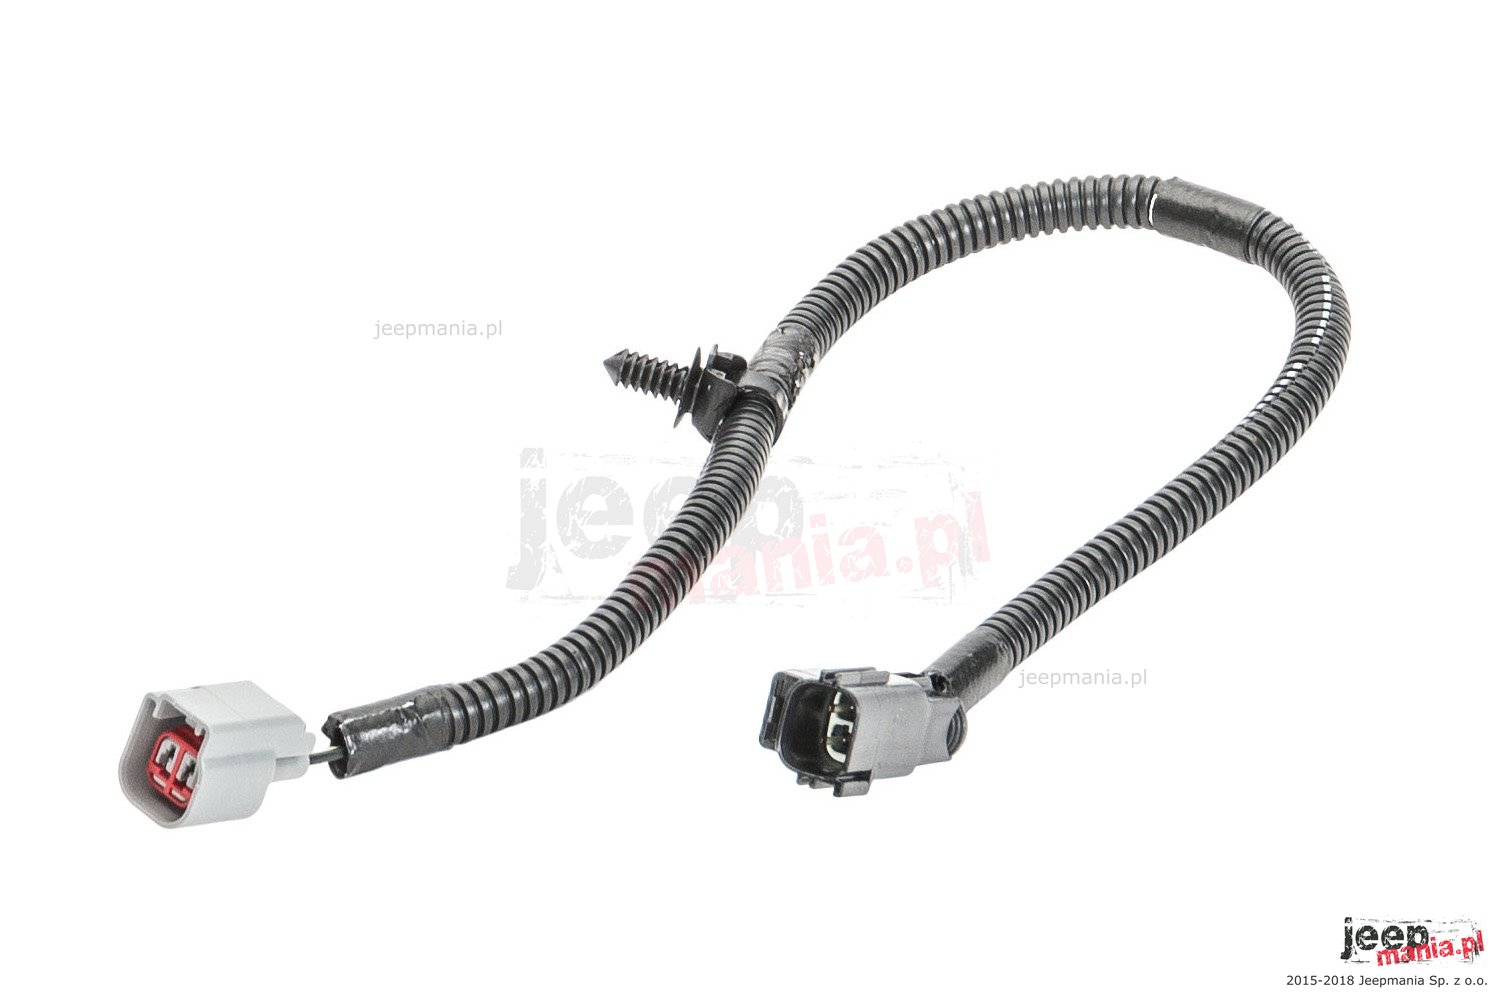 Side Marker Light Wiring Harness : 07-18 Jeep Wrangler JK